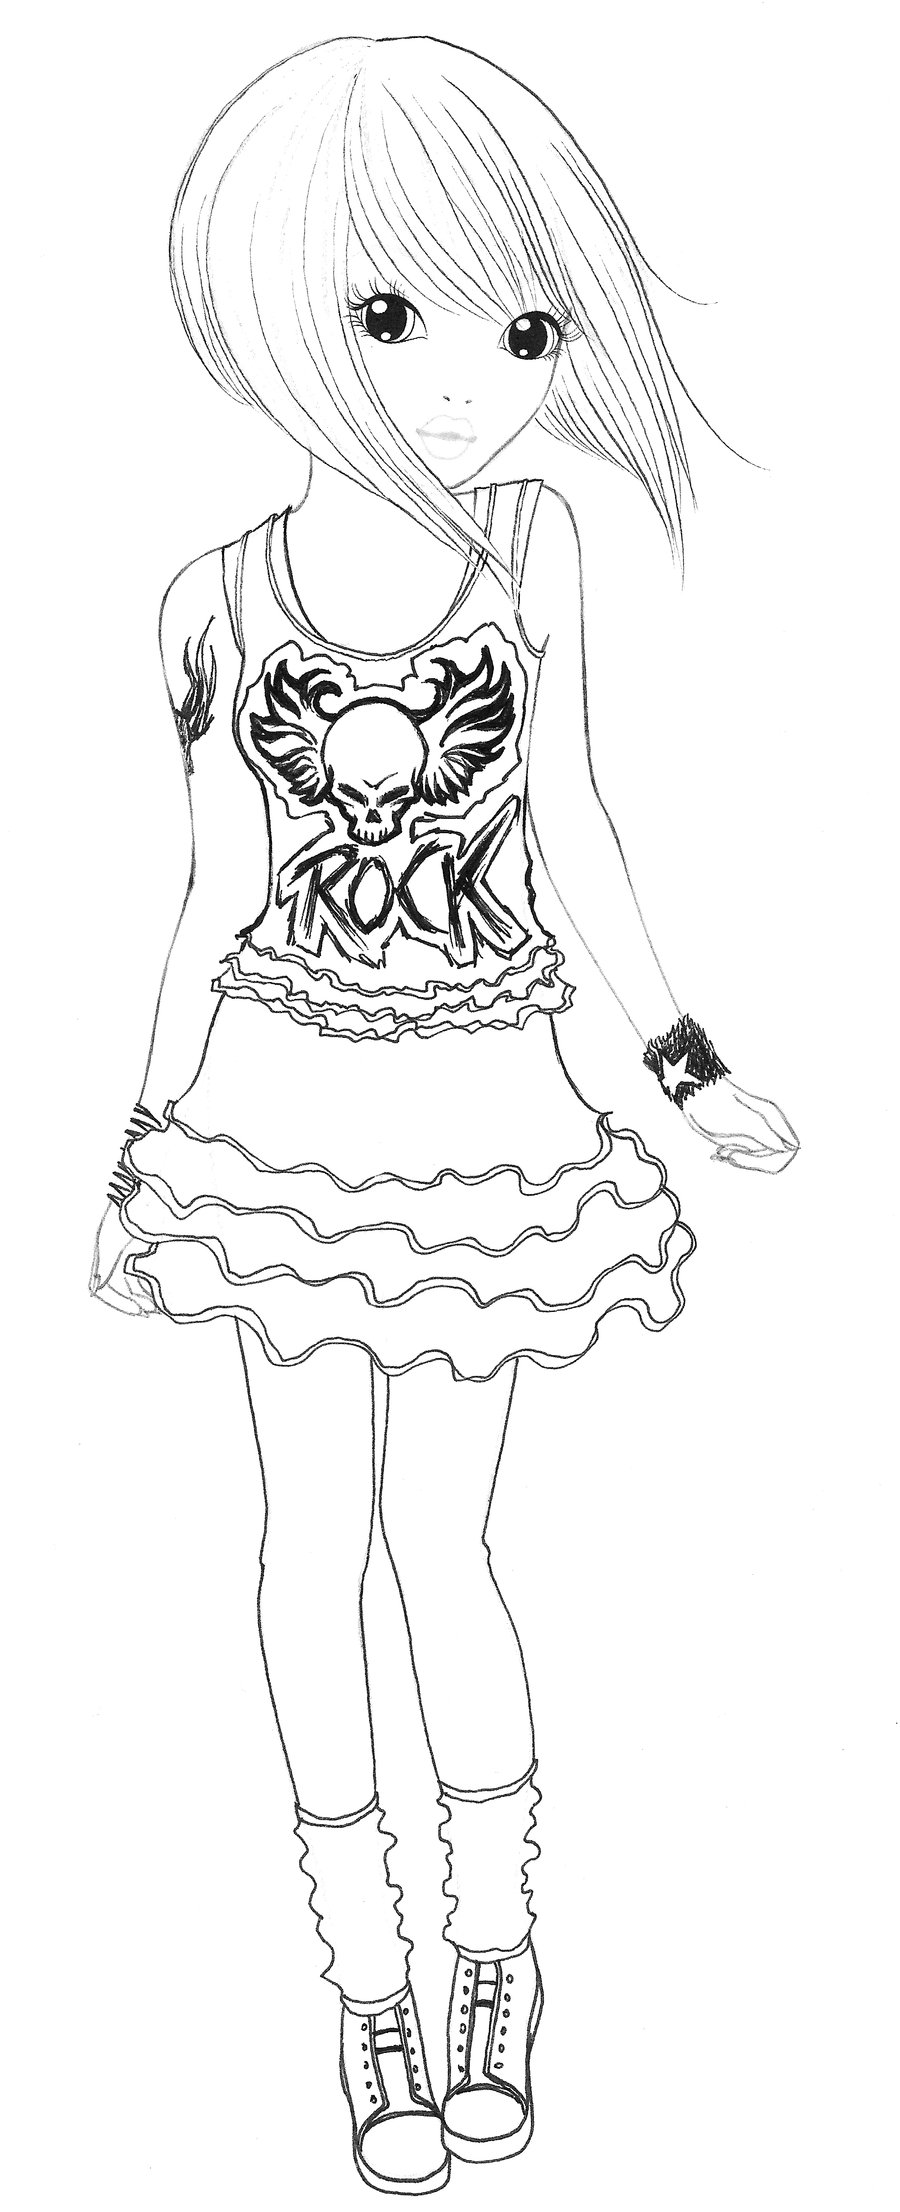 Jeux coloriage top model - Dessin de fille de mode ...